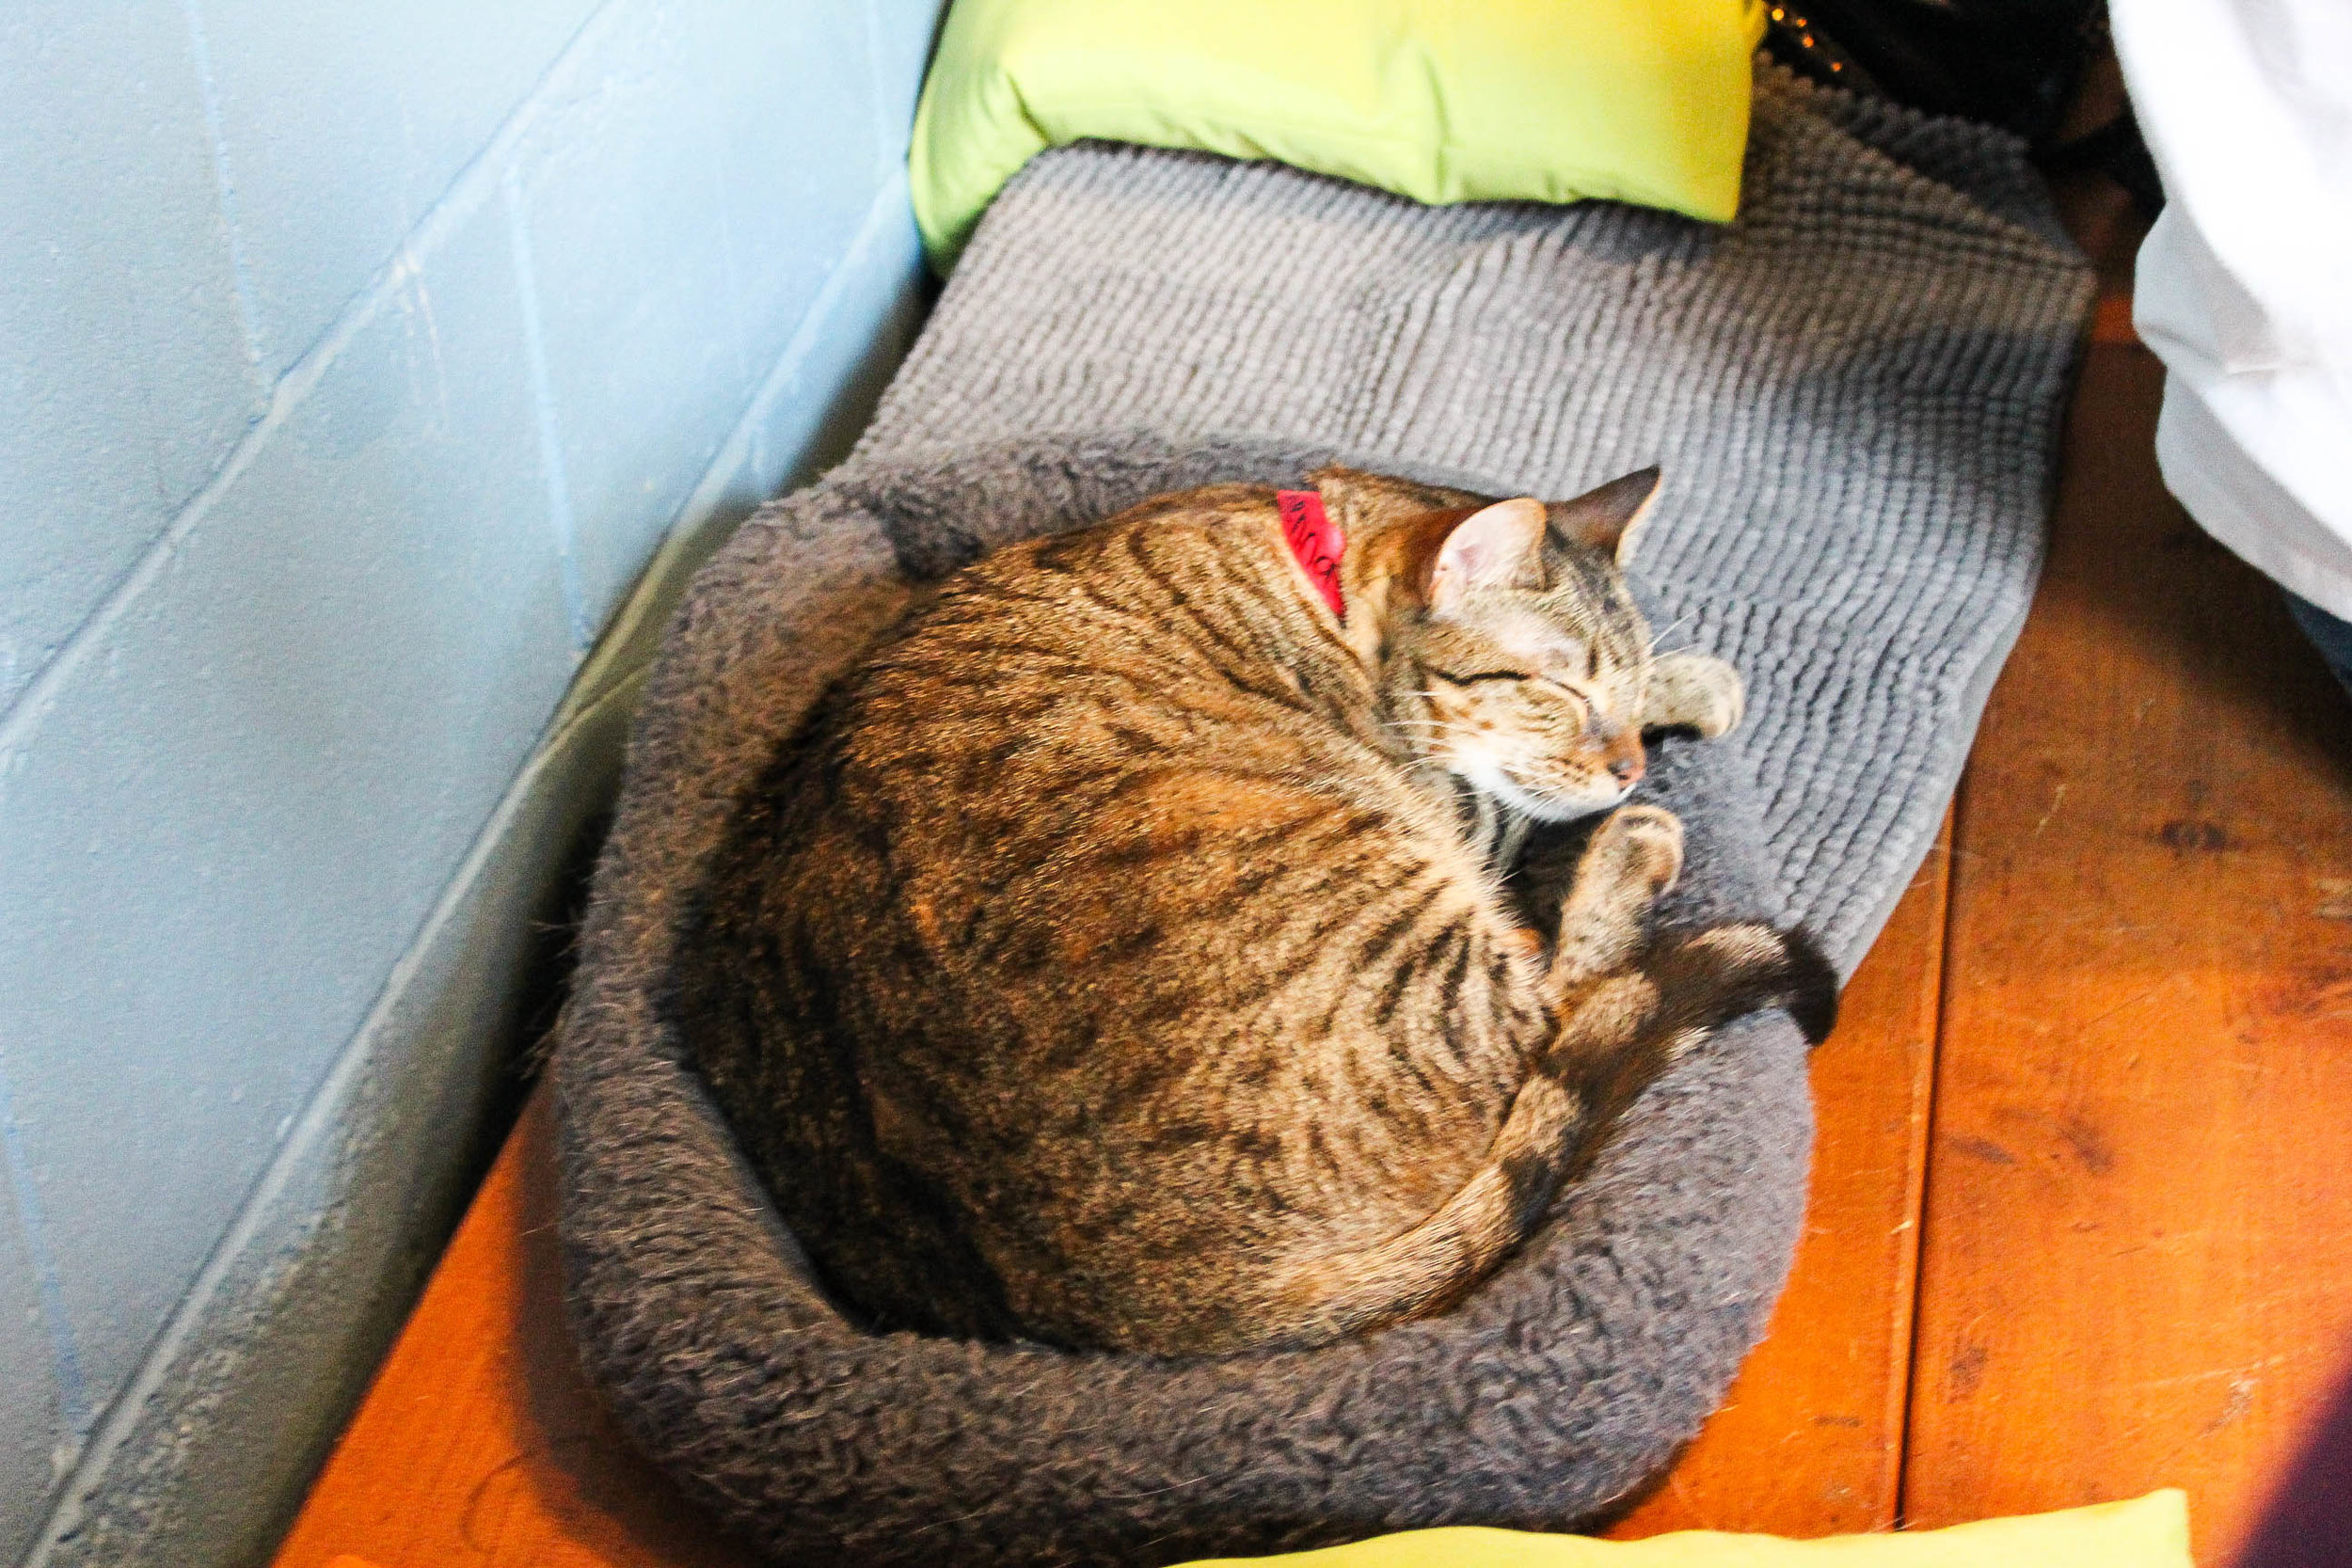 Meet Sienna! She's available for adoption at the Cat Café